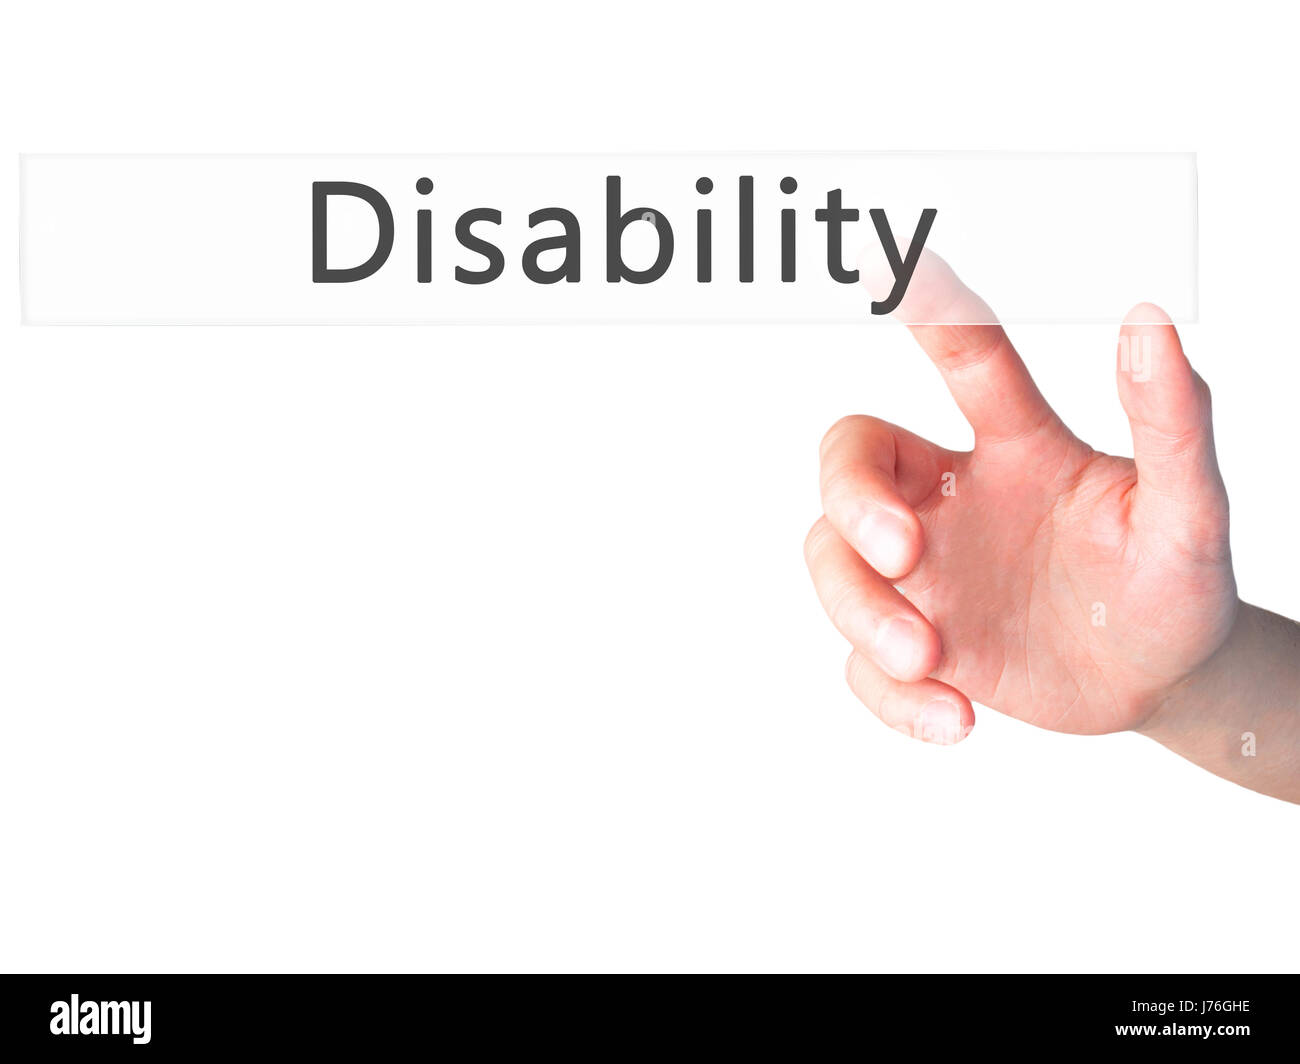 Disability - Hand pressing a button on blurred background concept . Business, technology, internet concept. Stock - Stock Image